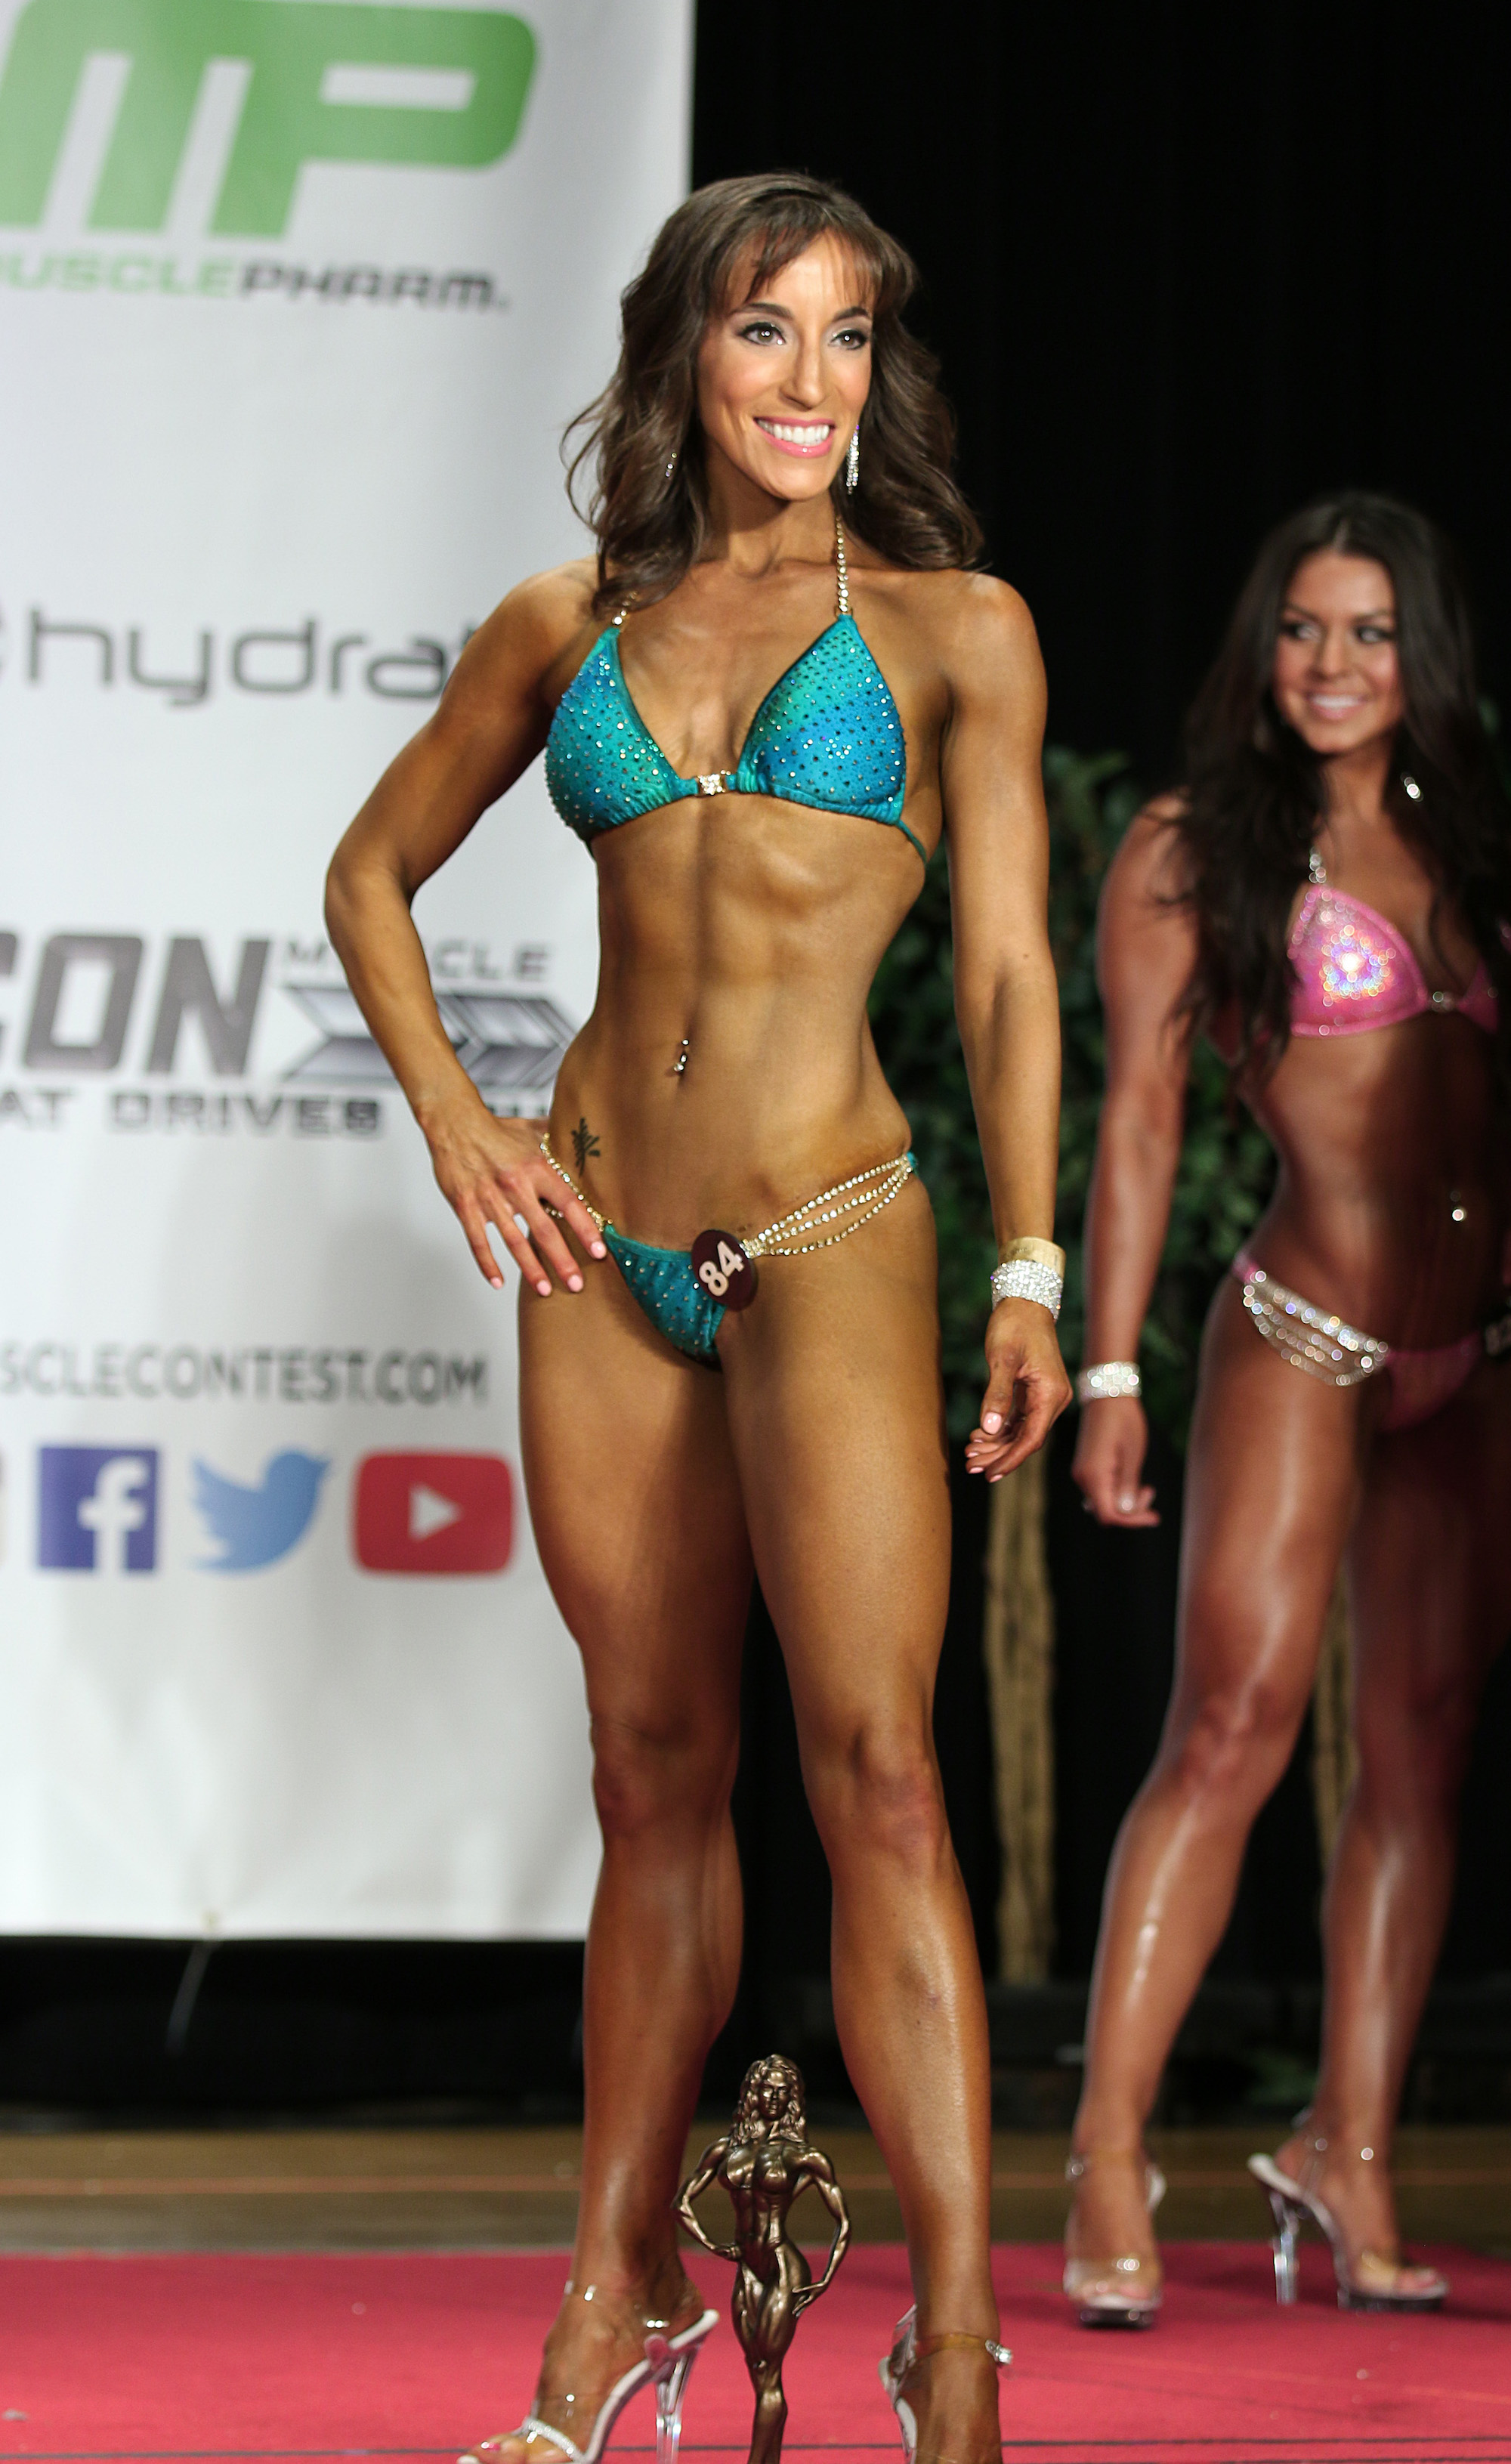 Lessons from Bikini Prep: 5 Ways to Prepare for Showtime